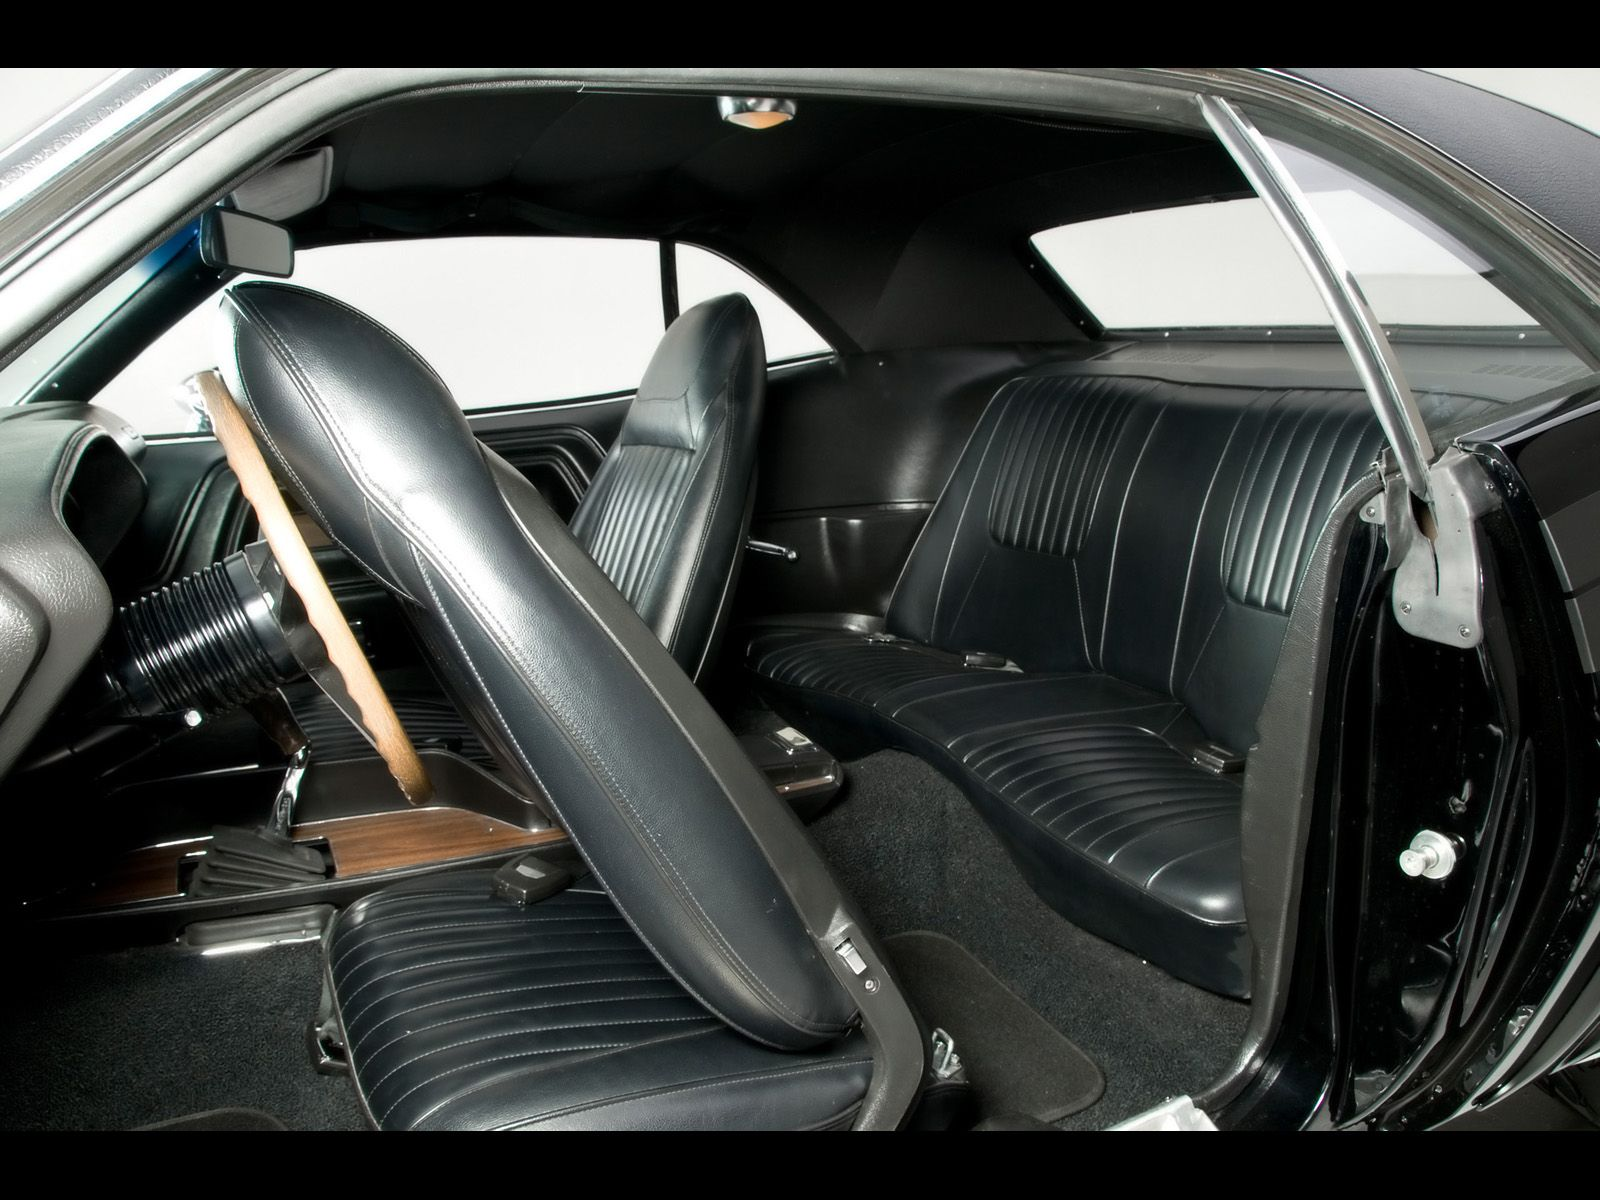 1971 dodge challenger r t muscle car by modern muscle rear seats